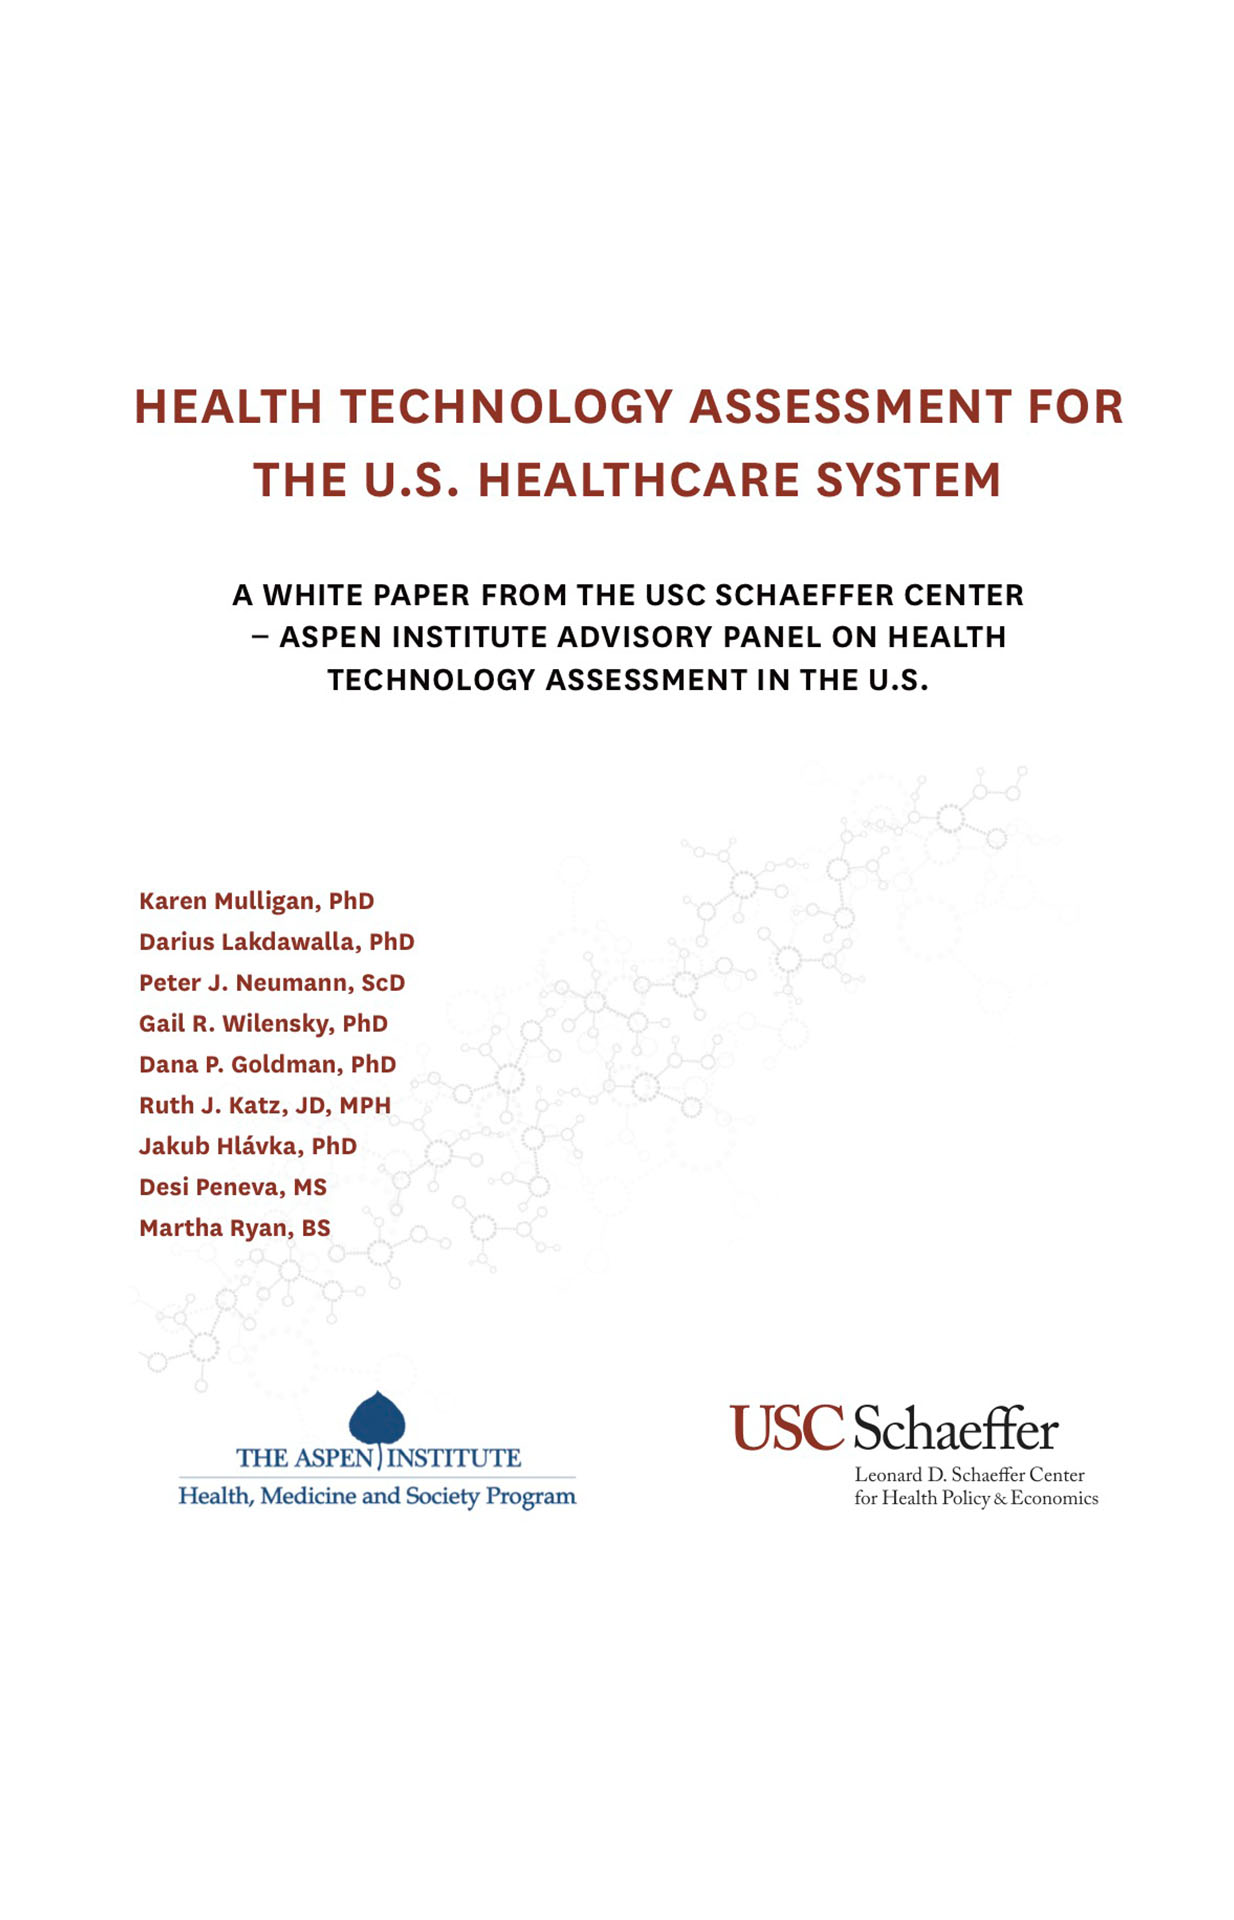 Health Technology Assessment for the US Healthcare System